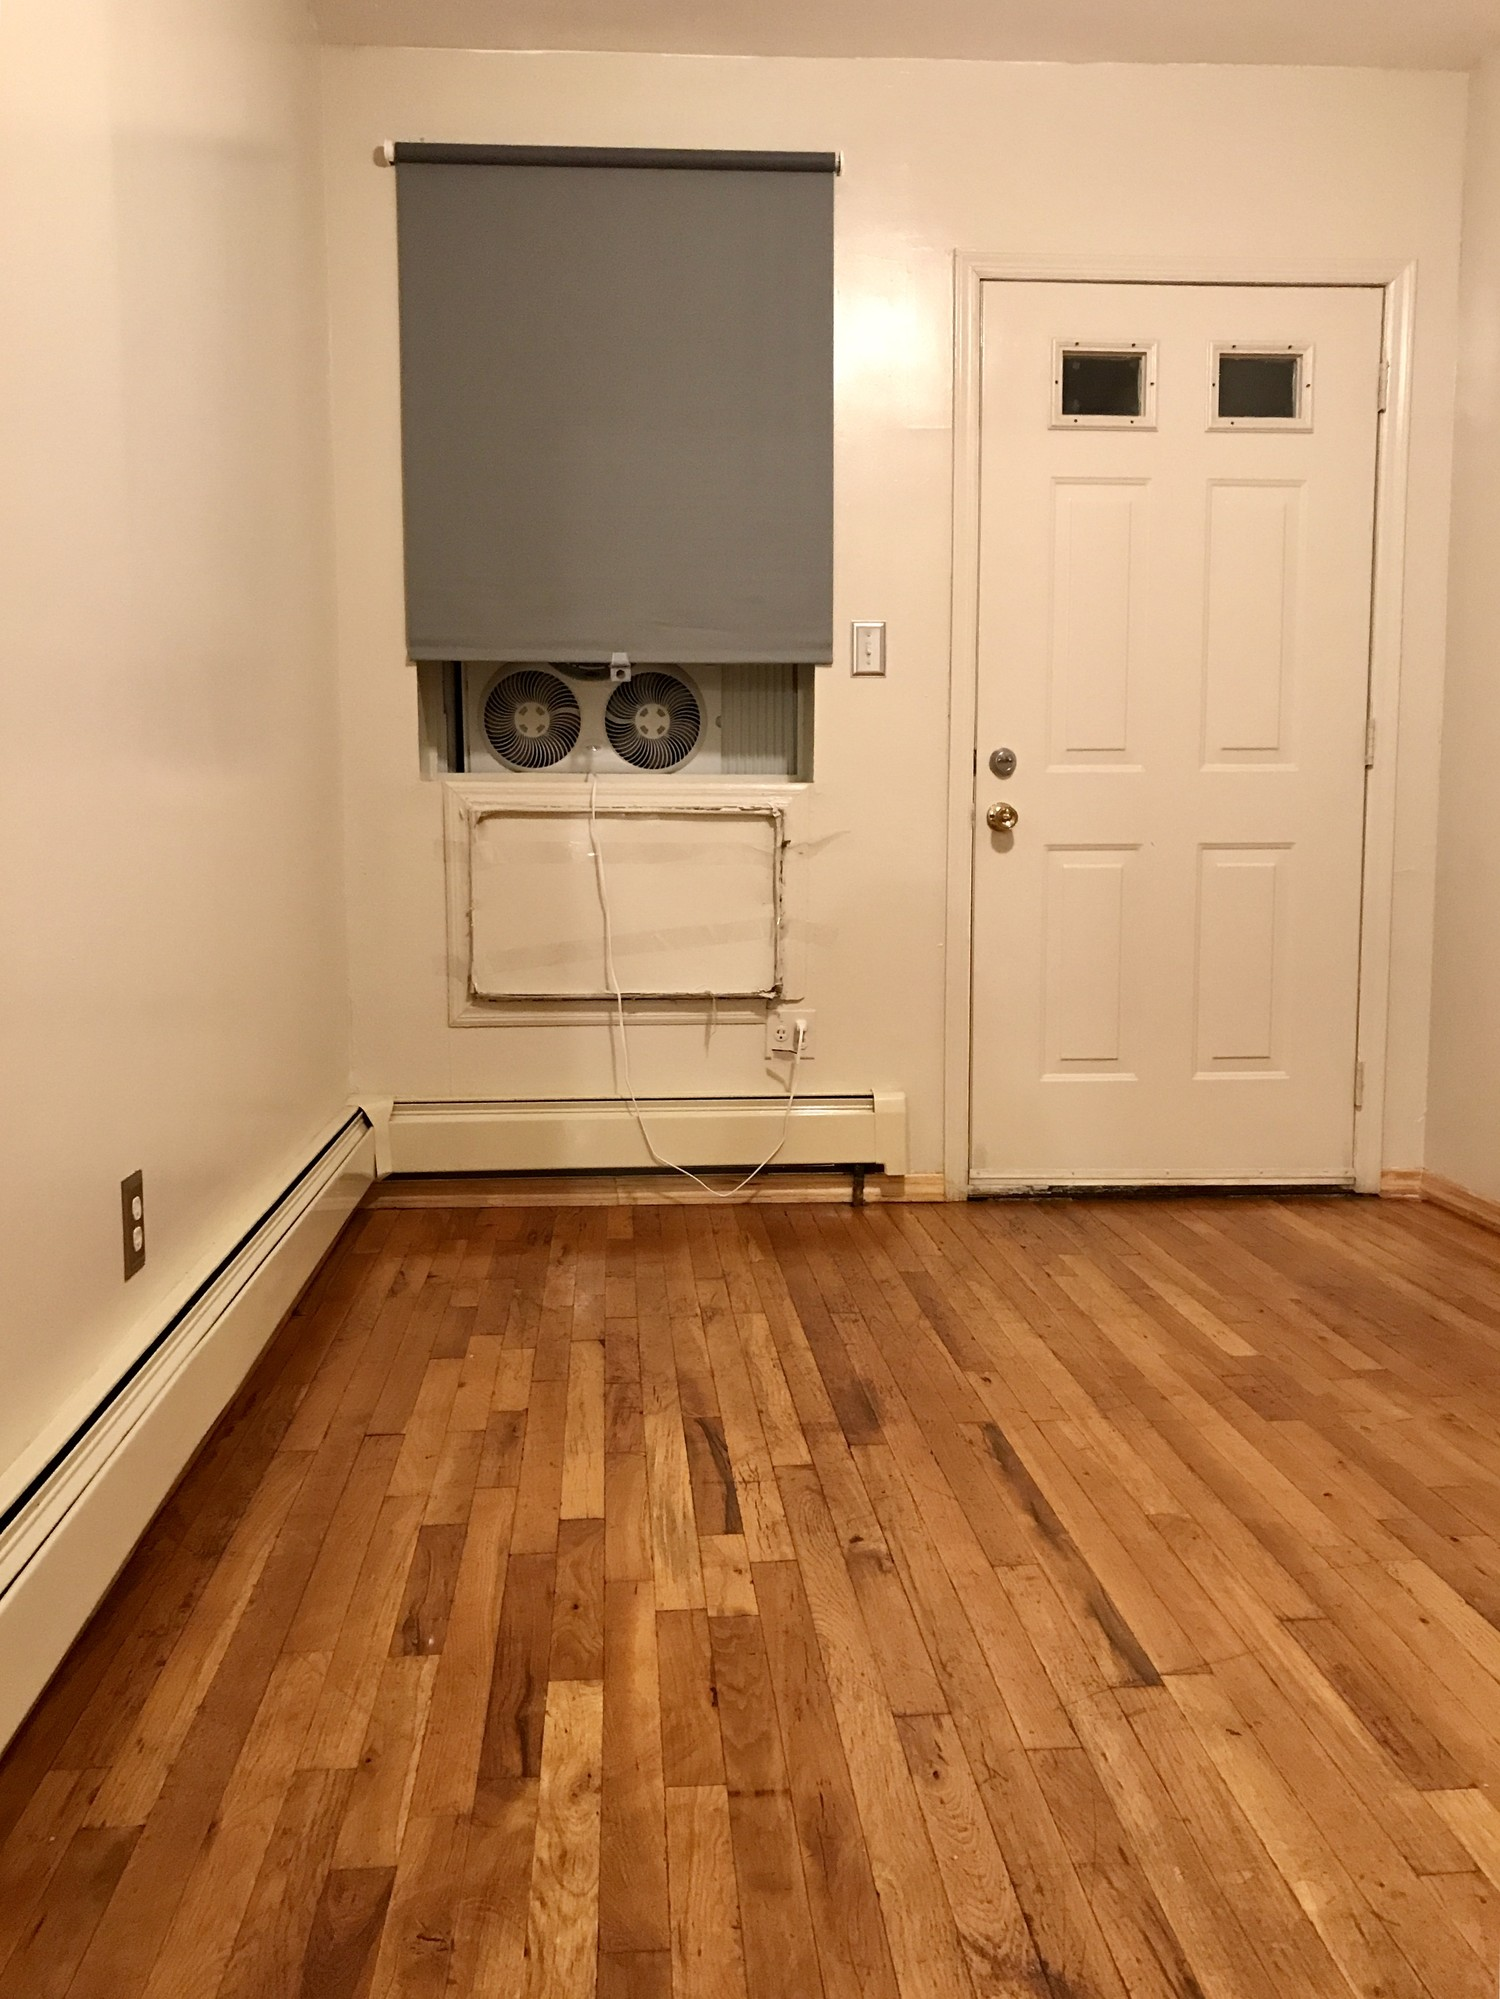 Unfurnished room in a cozy two bedroom